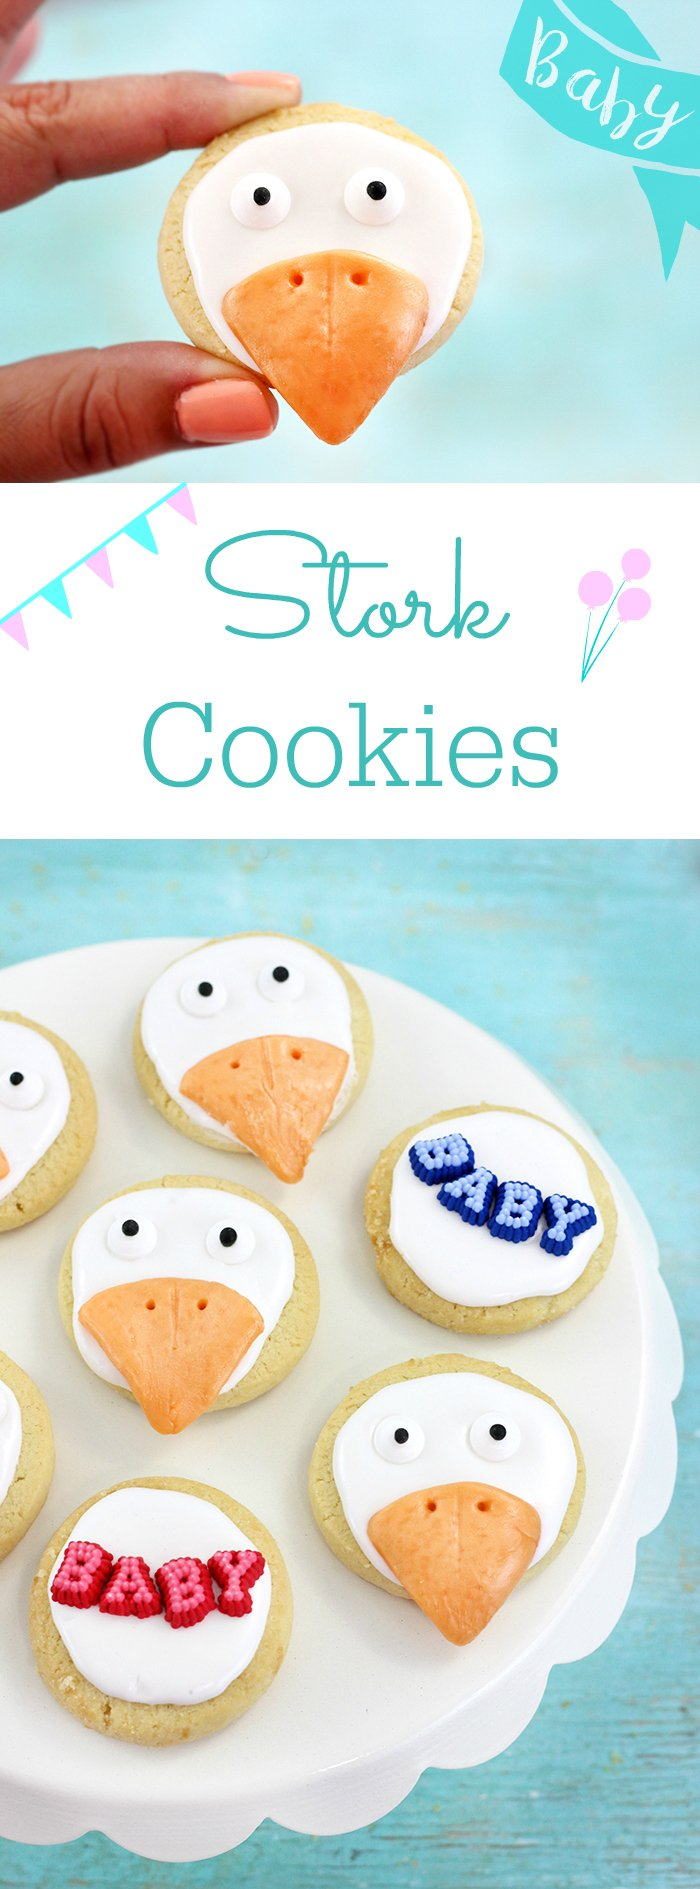 Stork Cookies. So cute! Perfect for celebrating the upcoming STORKS movie or for baby shower treats.